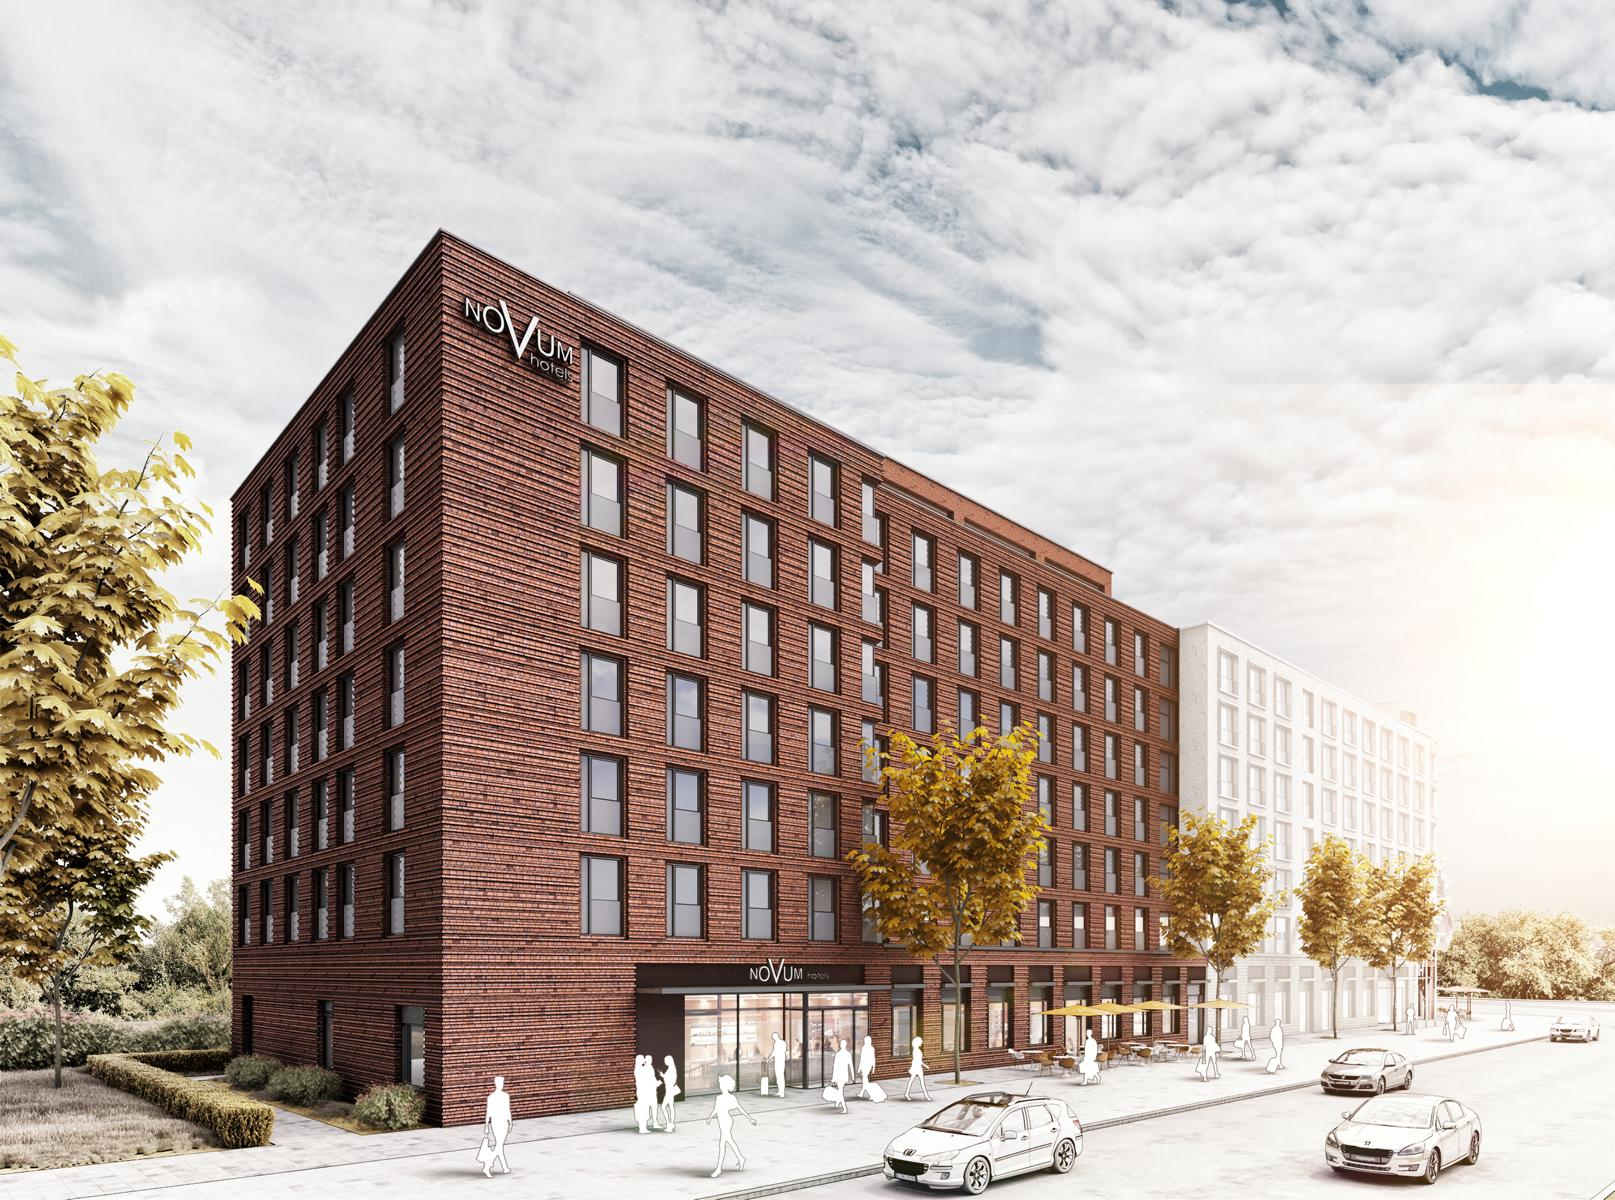 NOVUM Hotel Group to expand to mannheim in cooperation with GBI AG